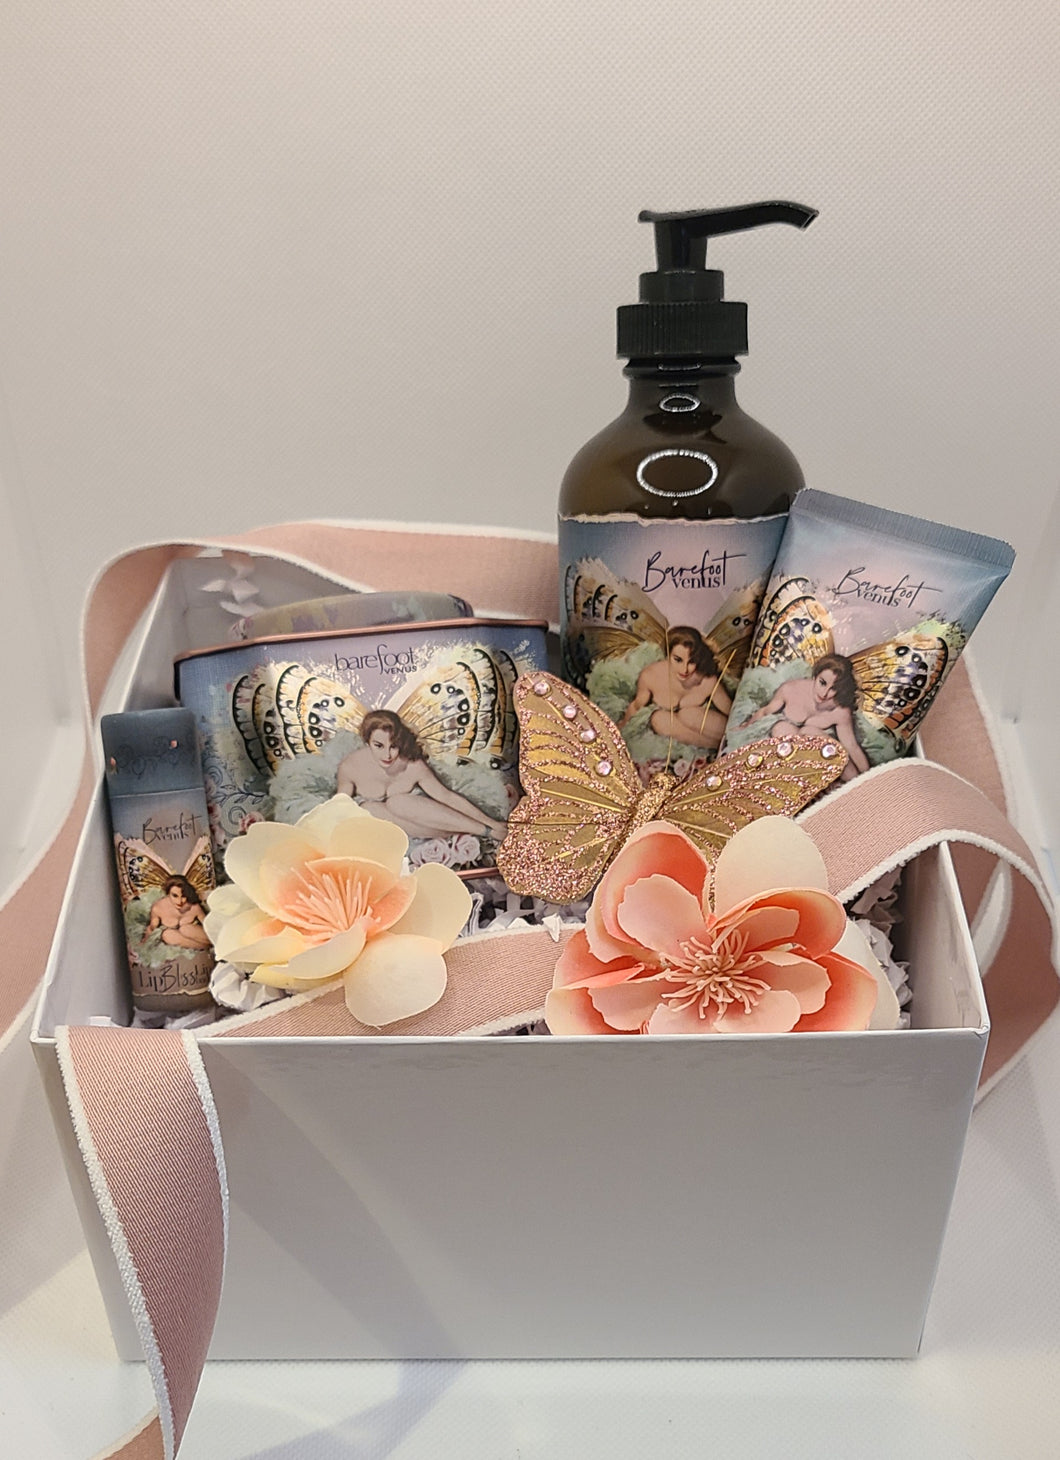 Gift Set - The Vanilla Effect Body